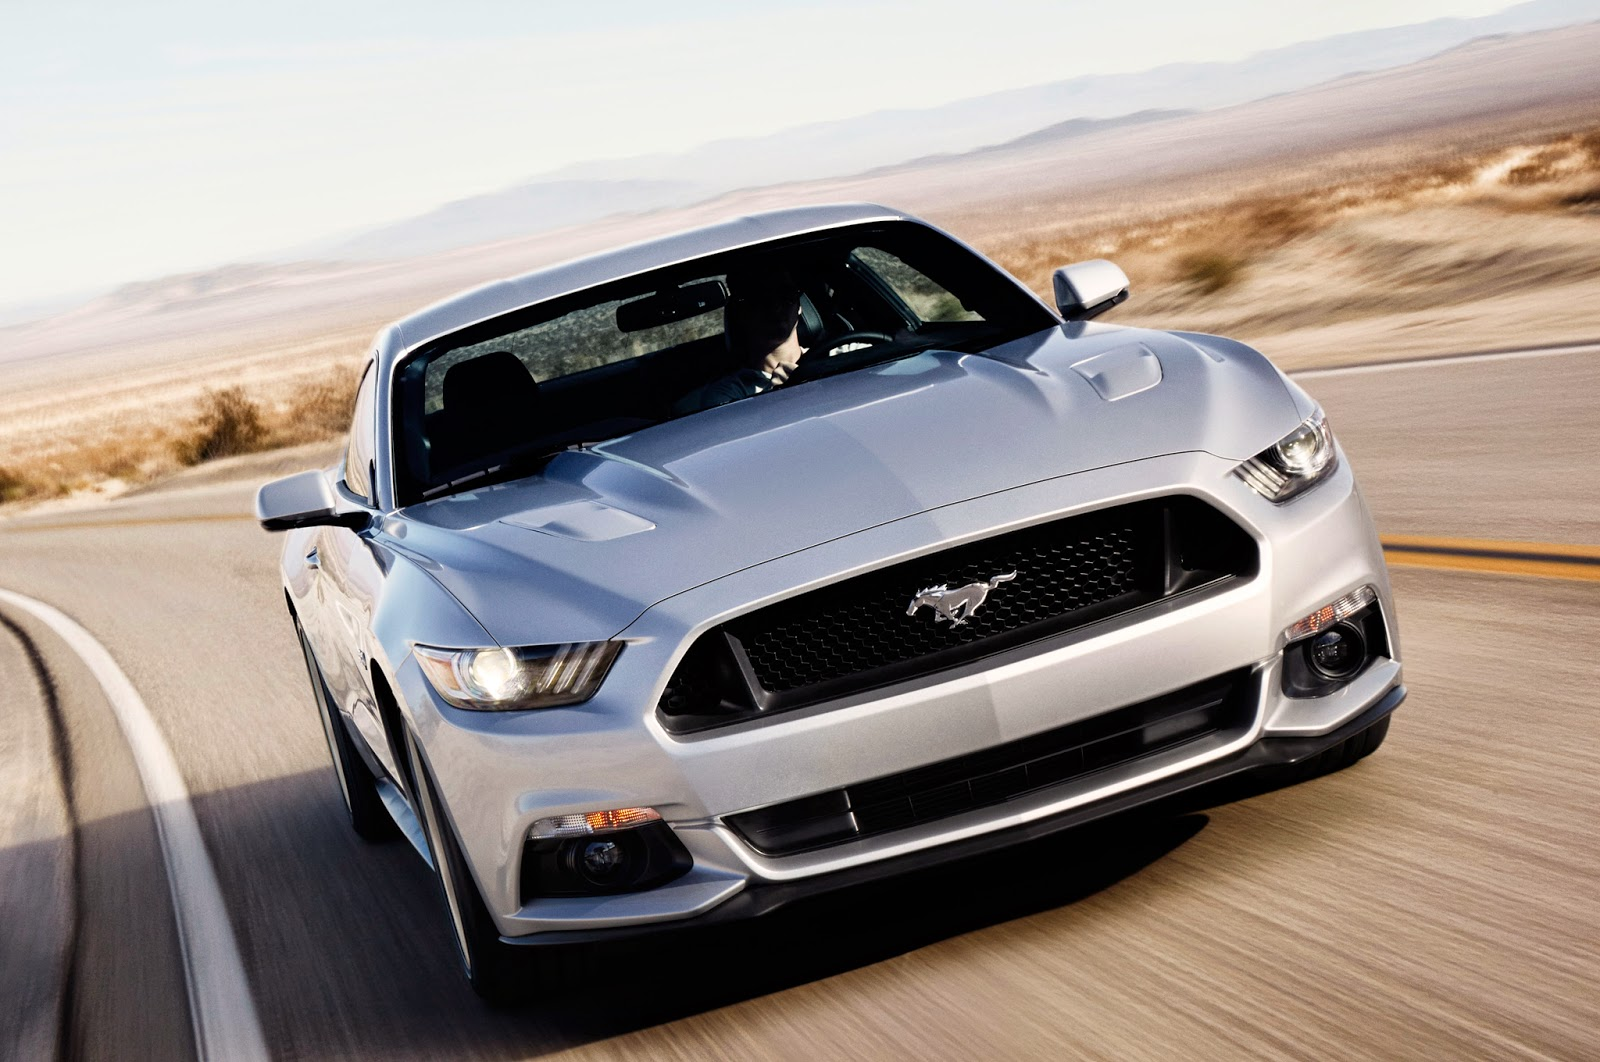 2015 Ford Mustang Earns Five-Star Vehicle Safety Rating from NHTSA